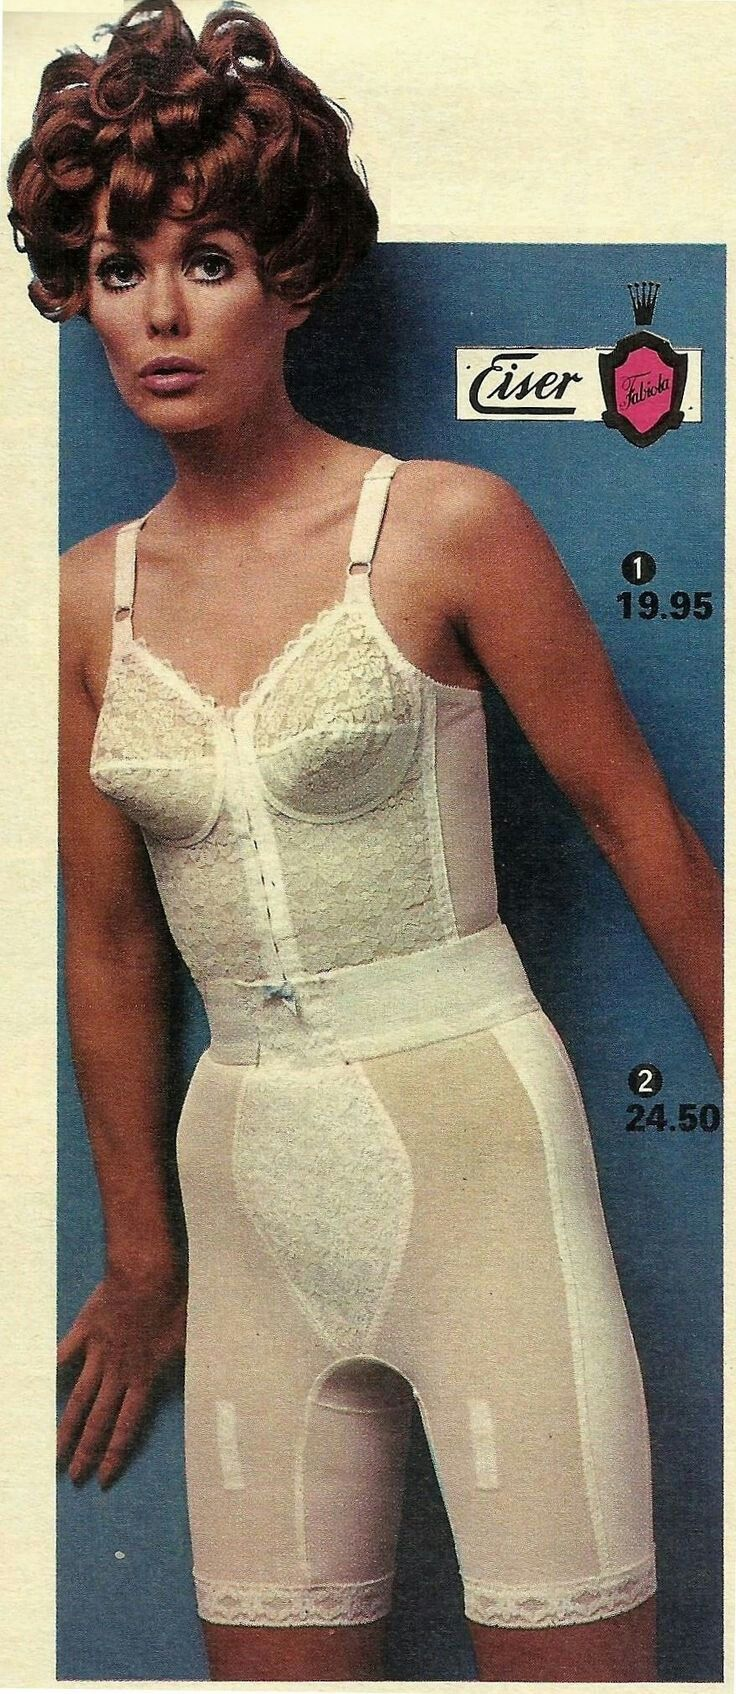 262 best images about Girdles on Pinterest